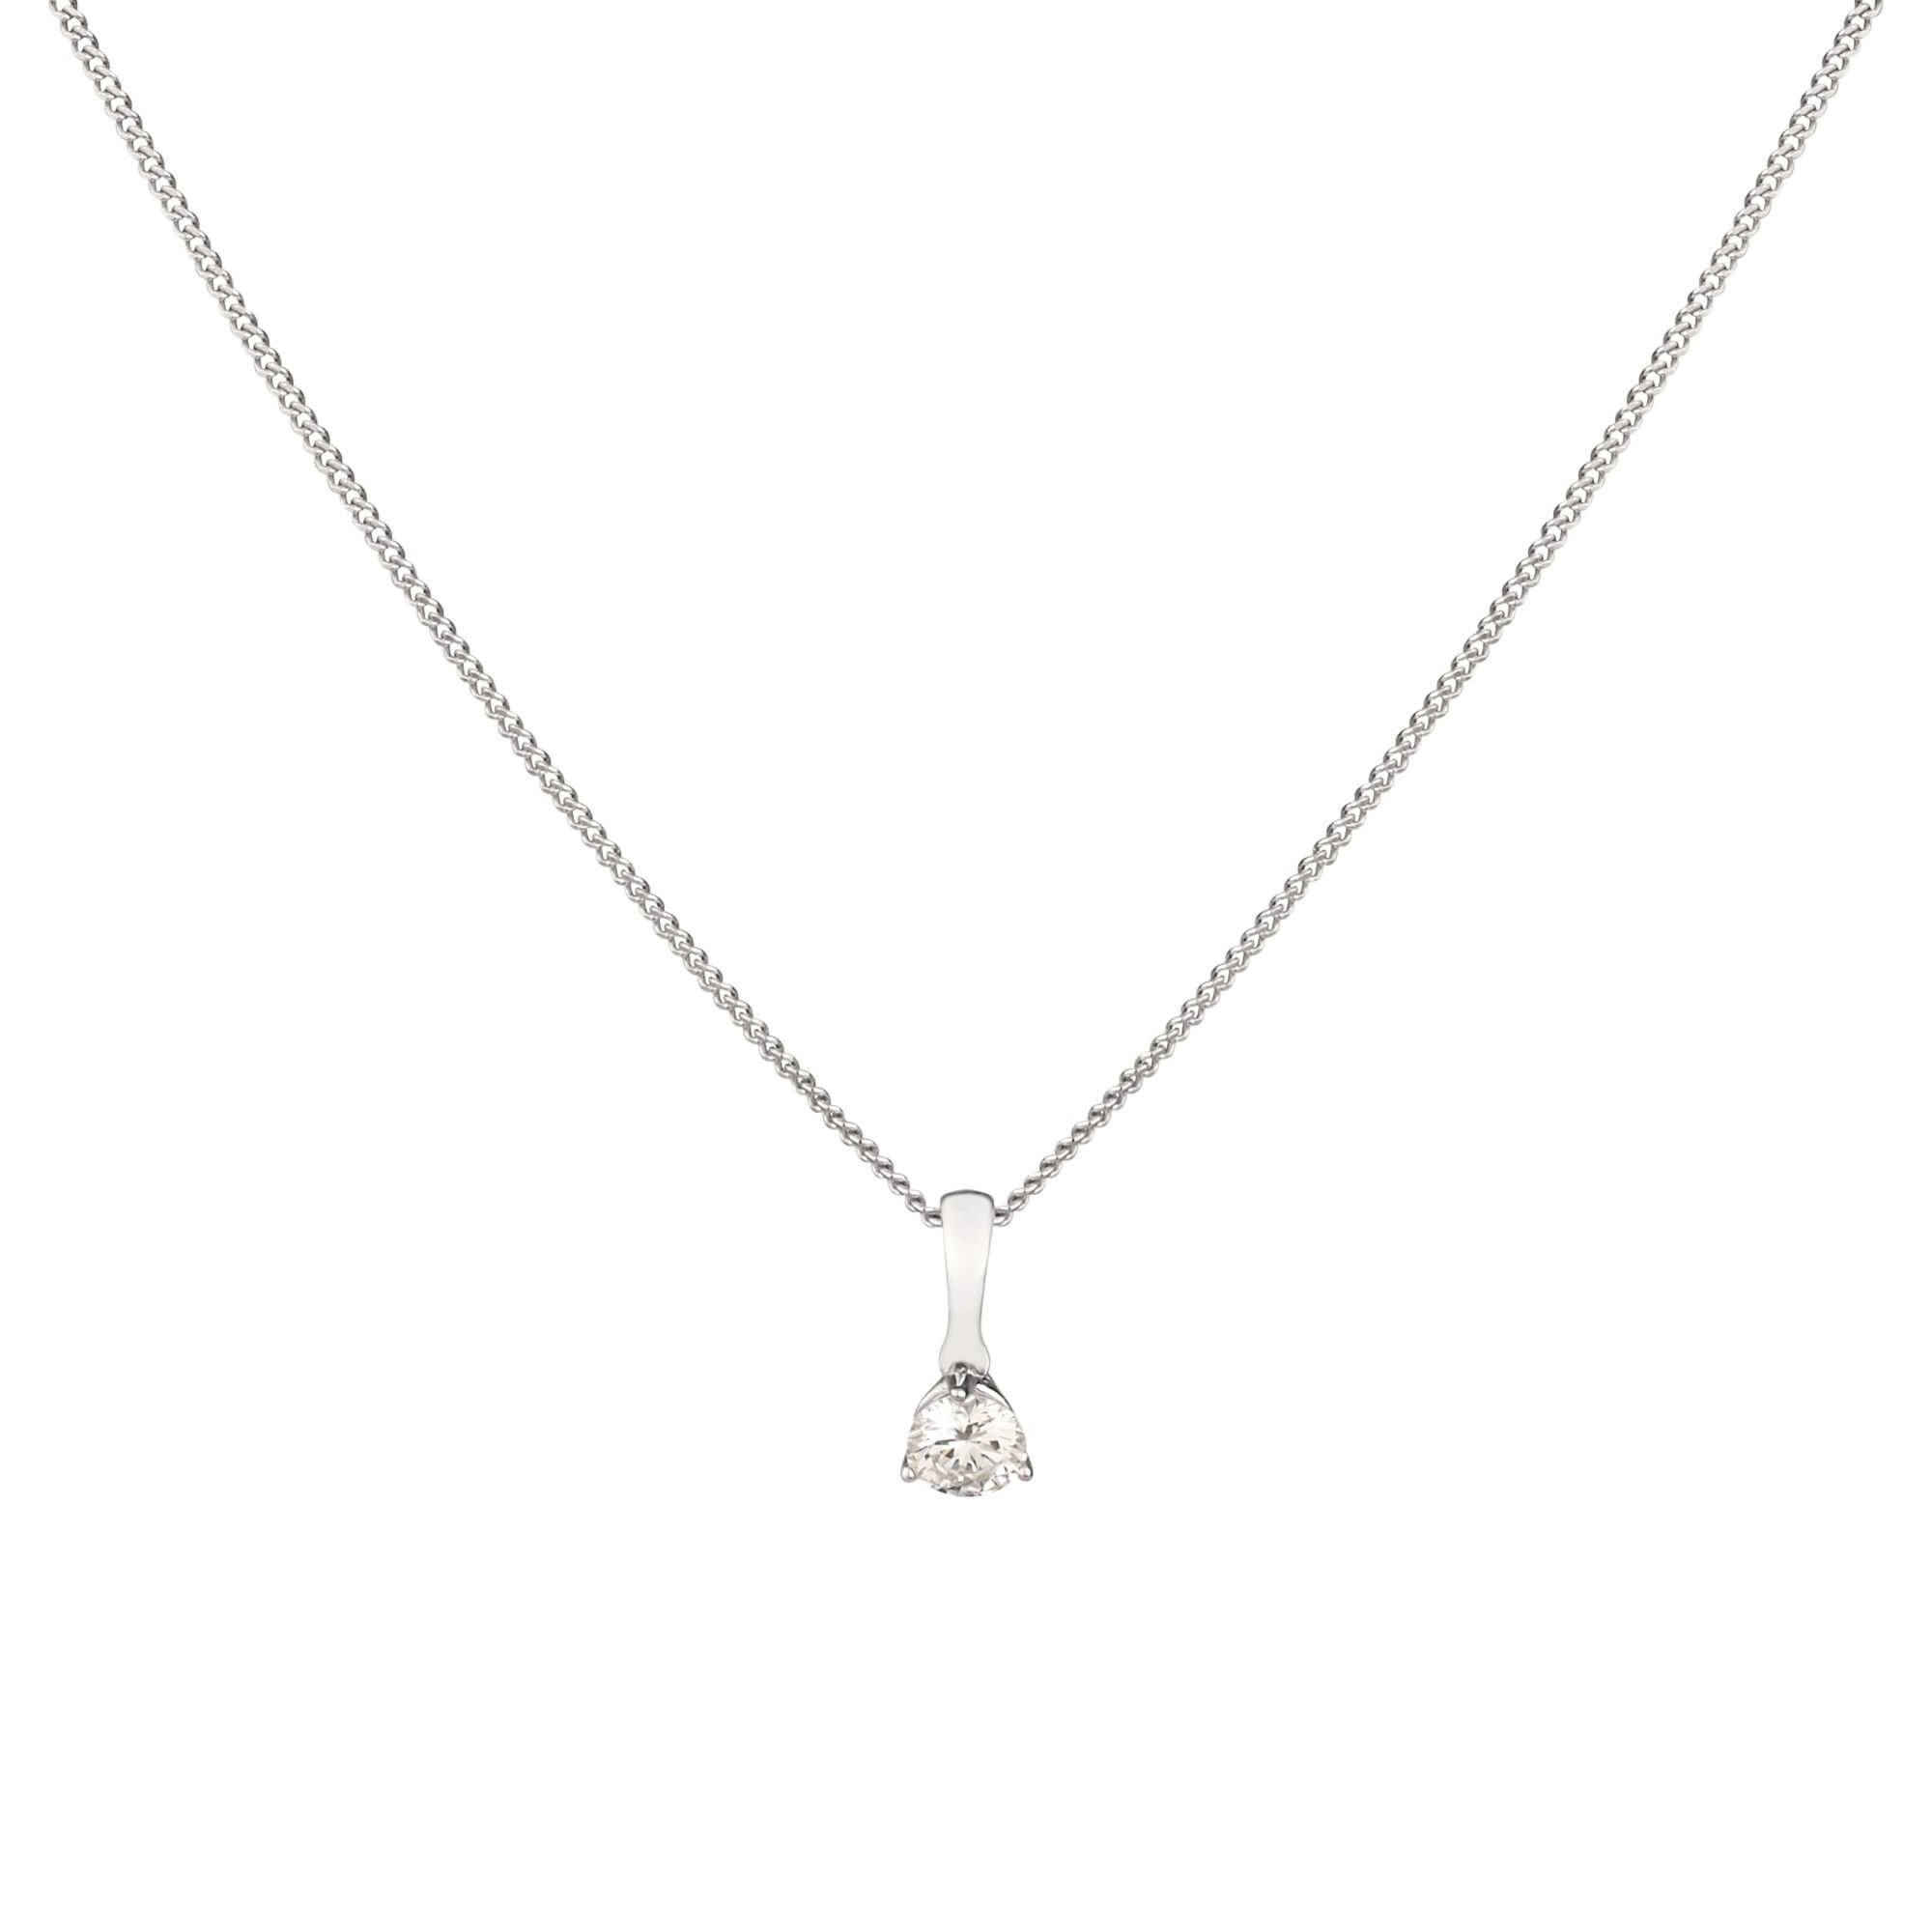 Dinny Hall 18k White Gold Diamond Solitaire Pendant Necklace